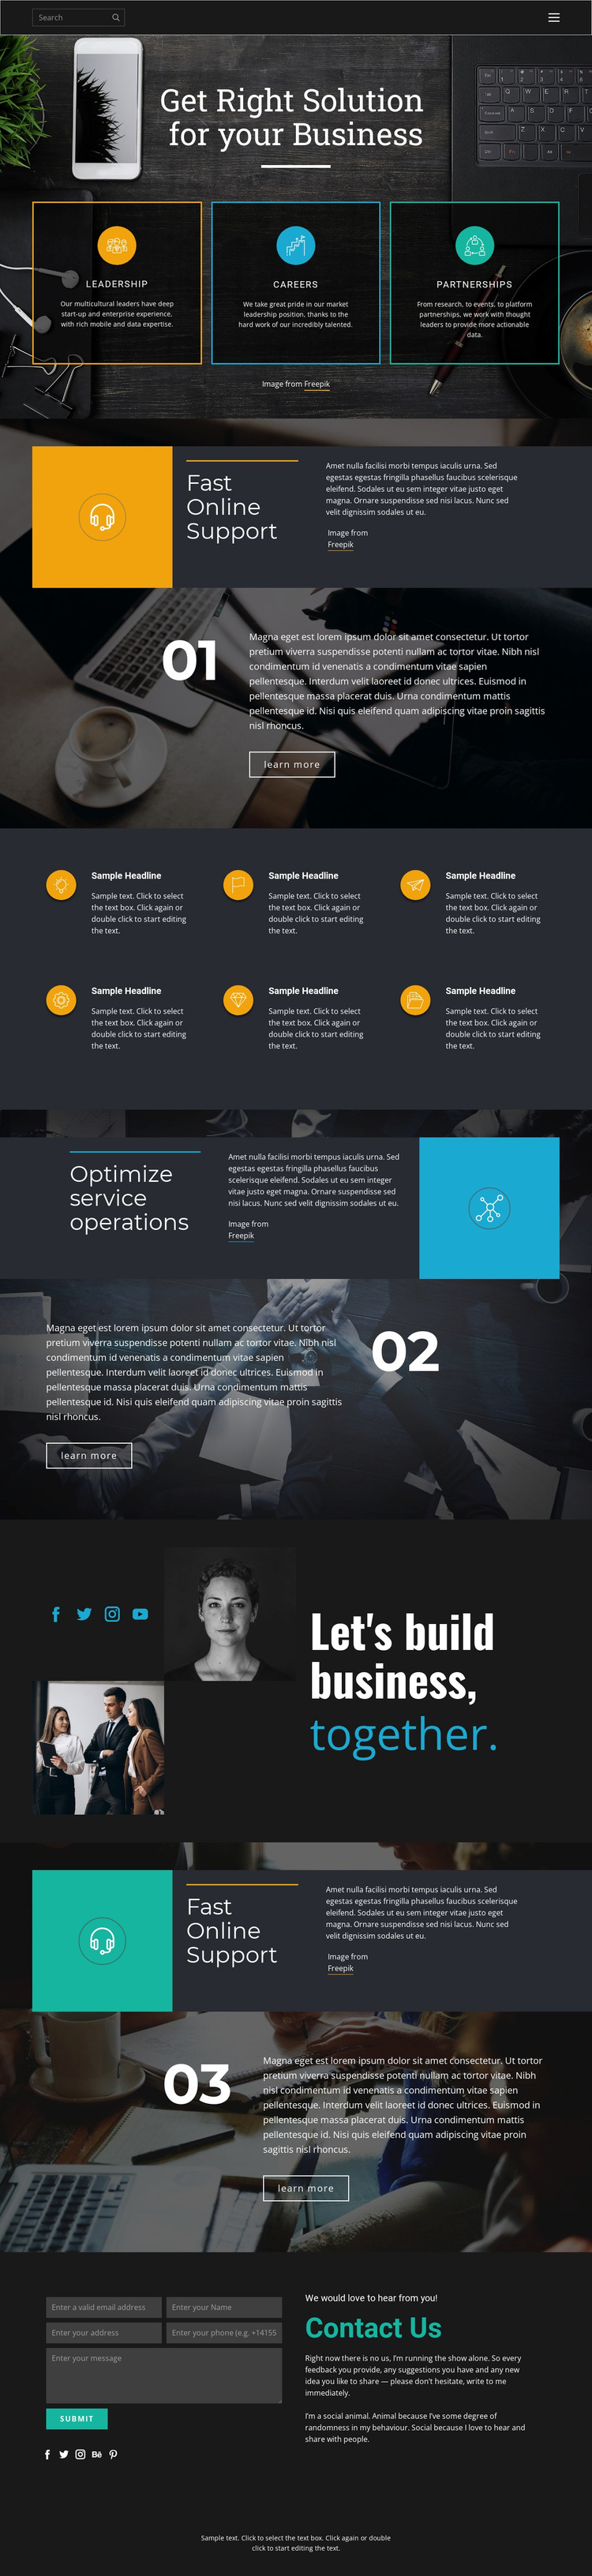 Right solutions for business Template